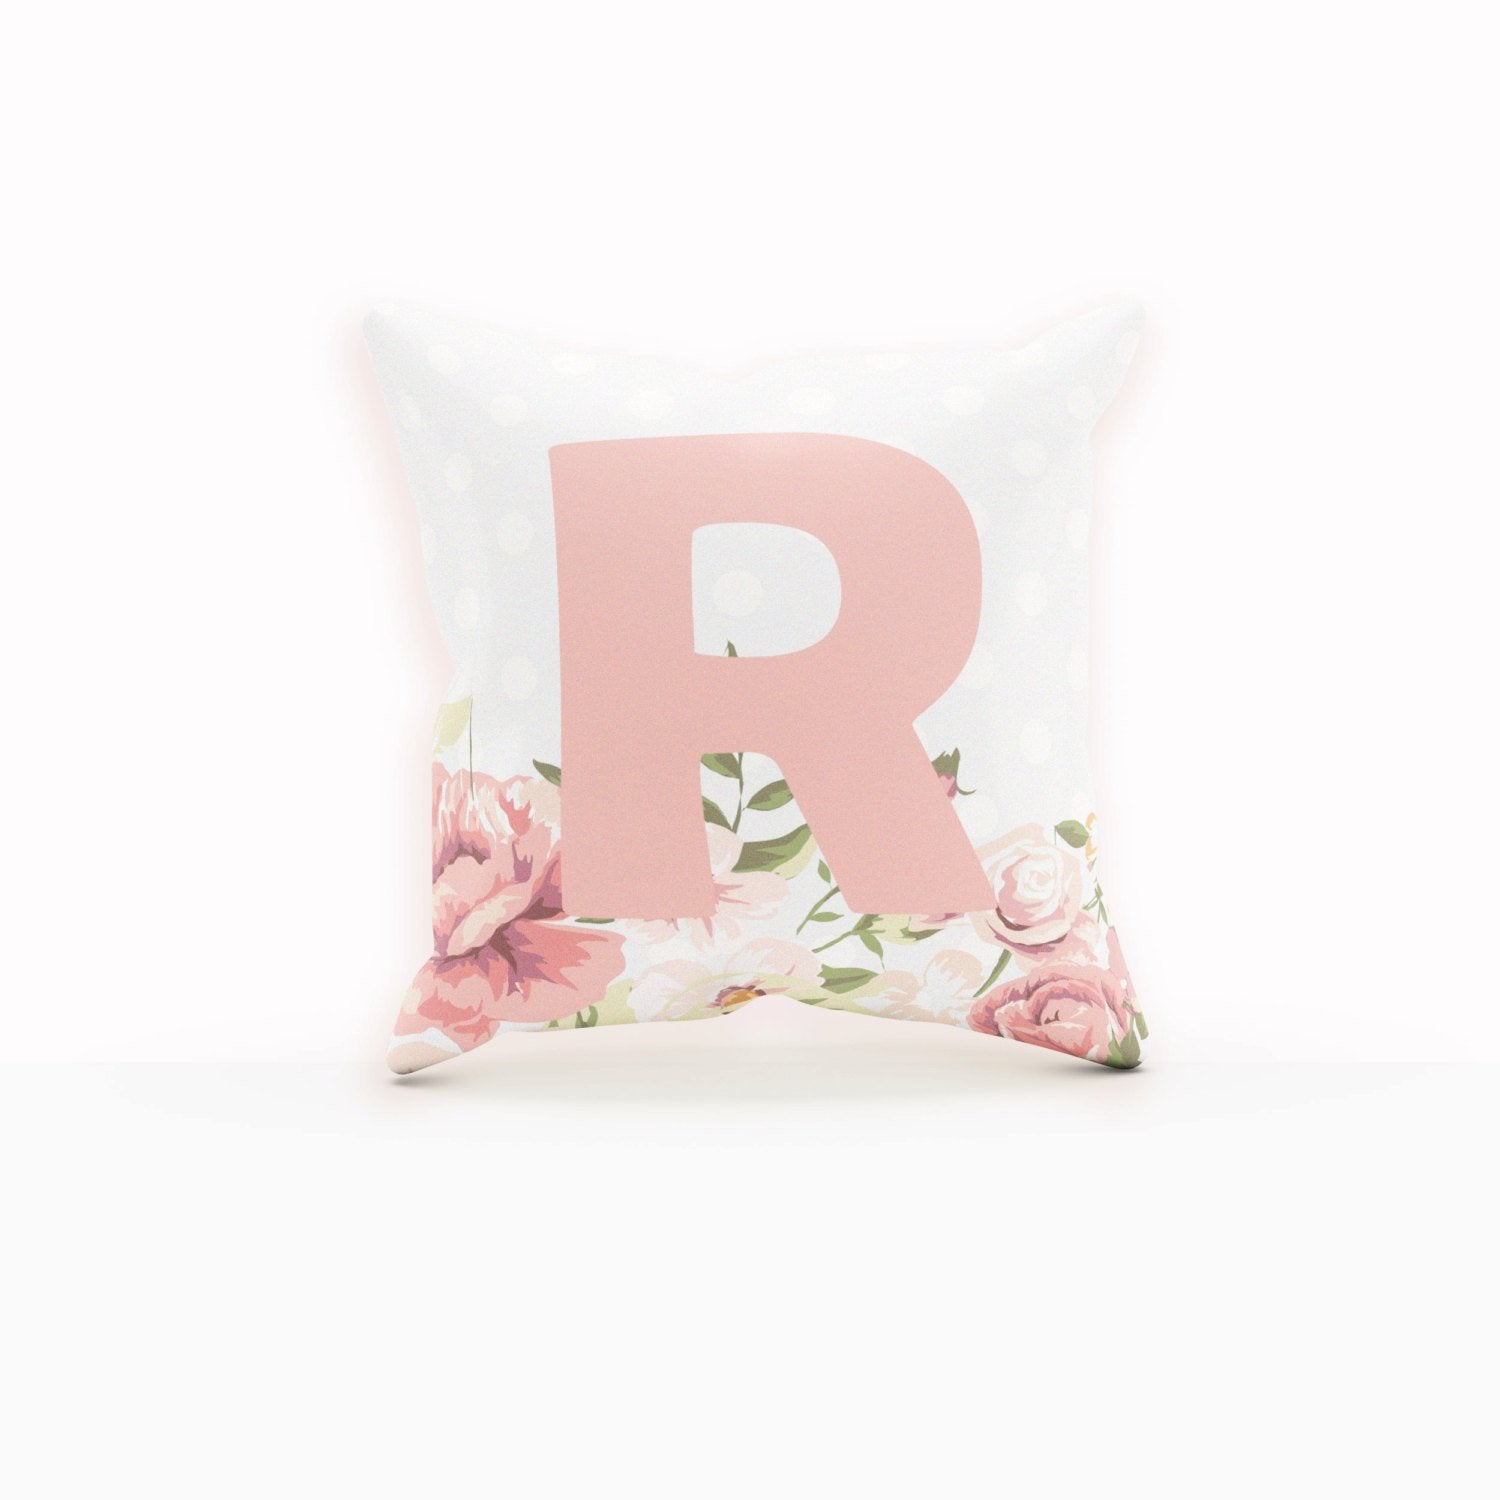 Floral Pillow Cases, Monogram Pillow, Floral Pillow Cover, Throw Pillows Pink